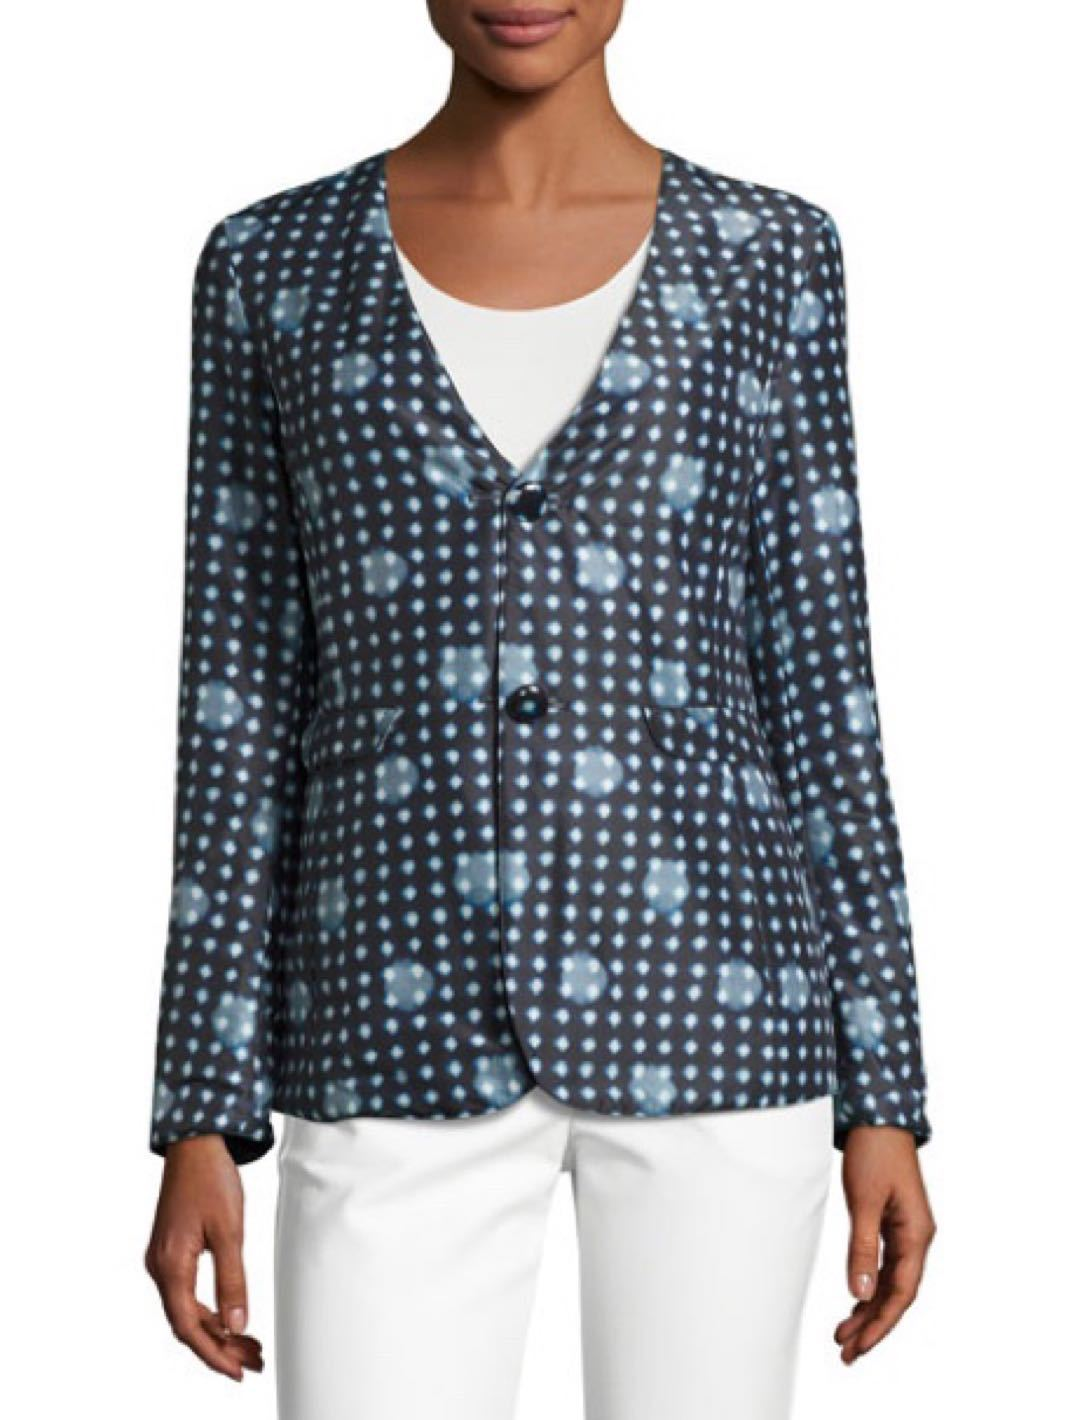 Reversible Dot-Print Two Button Jacket - The Bobby Boga